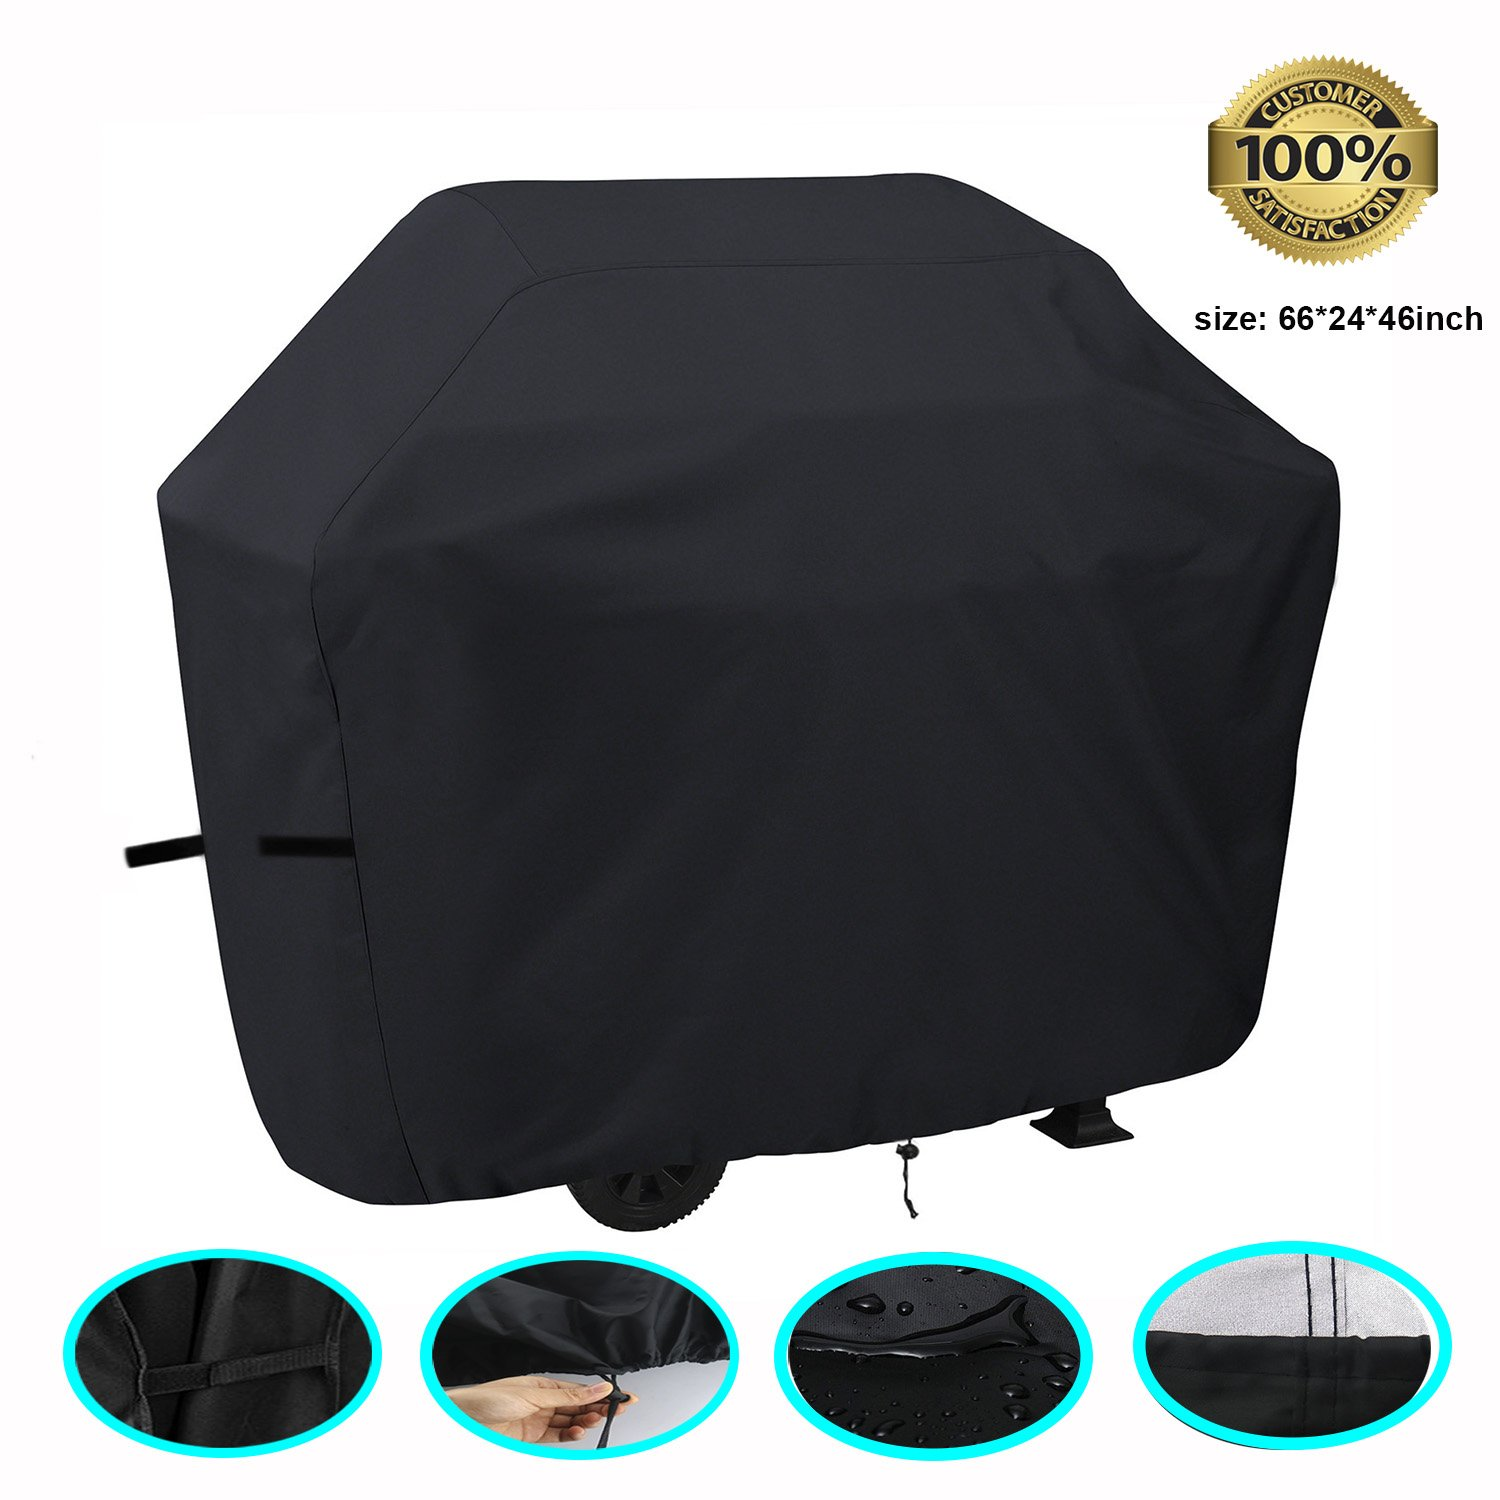 Barbecue Grill Patio Storage Cover FUCNEN Heavy Duty Black Backyard Basics BBQ Cover Water Wind Dustproof Resistant UV Protection Burner Gas BBQ Grill Cover for John Lewis, Swiss Grill, Outback Gourmet, Asda, Beefeater, Weber Gas BBQ and So On Large Size